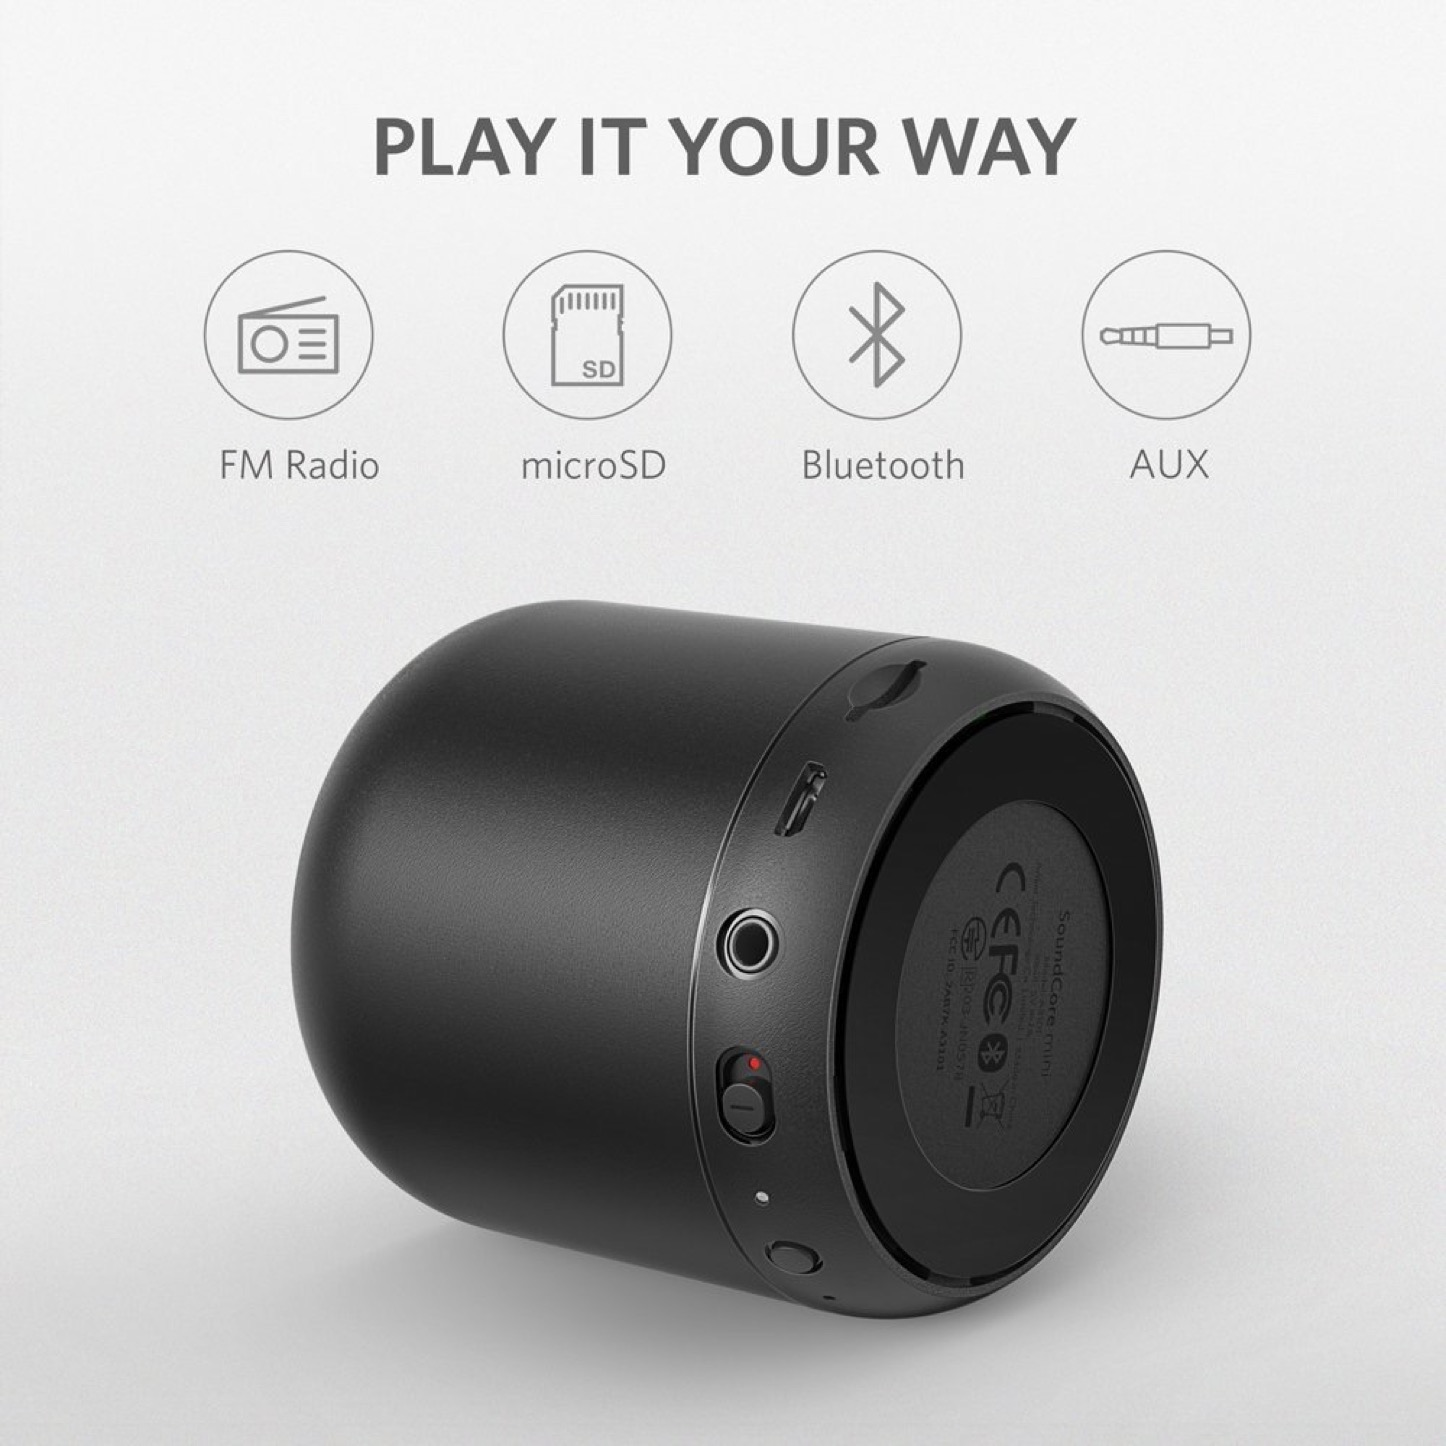 Anker-SoundCore-Mini-04.jpg